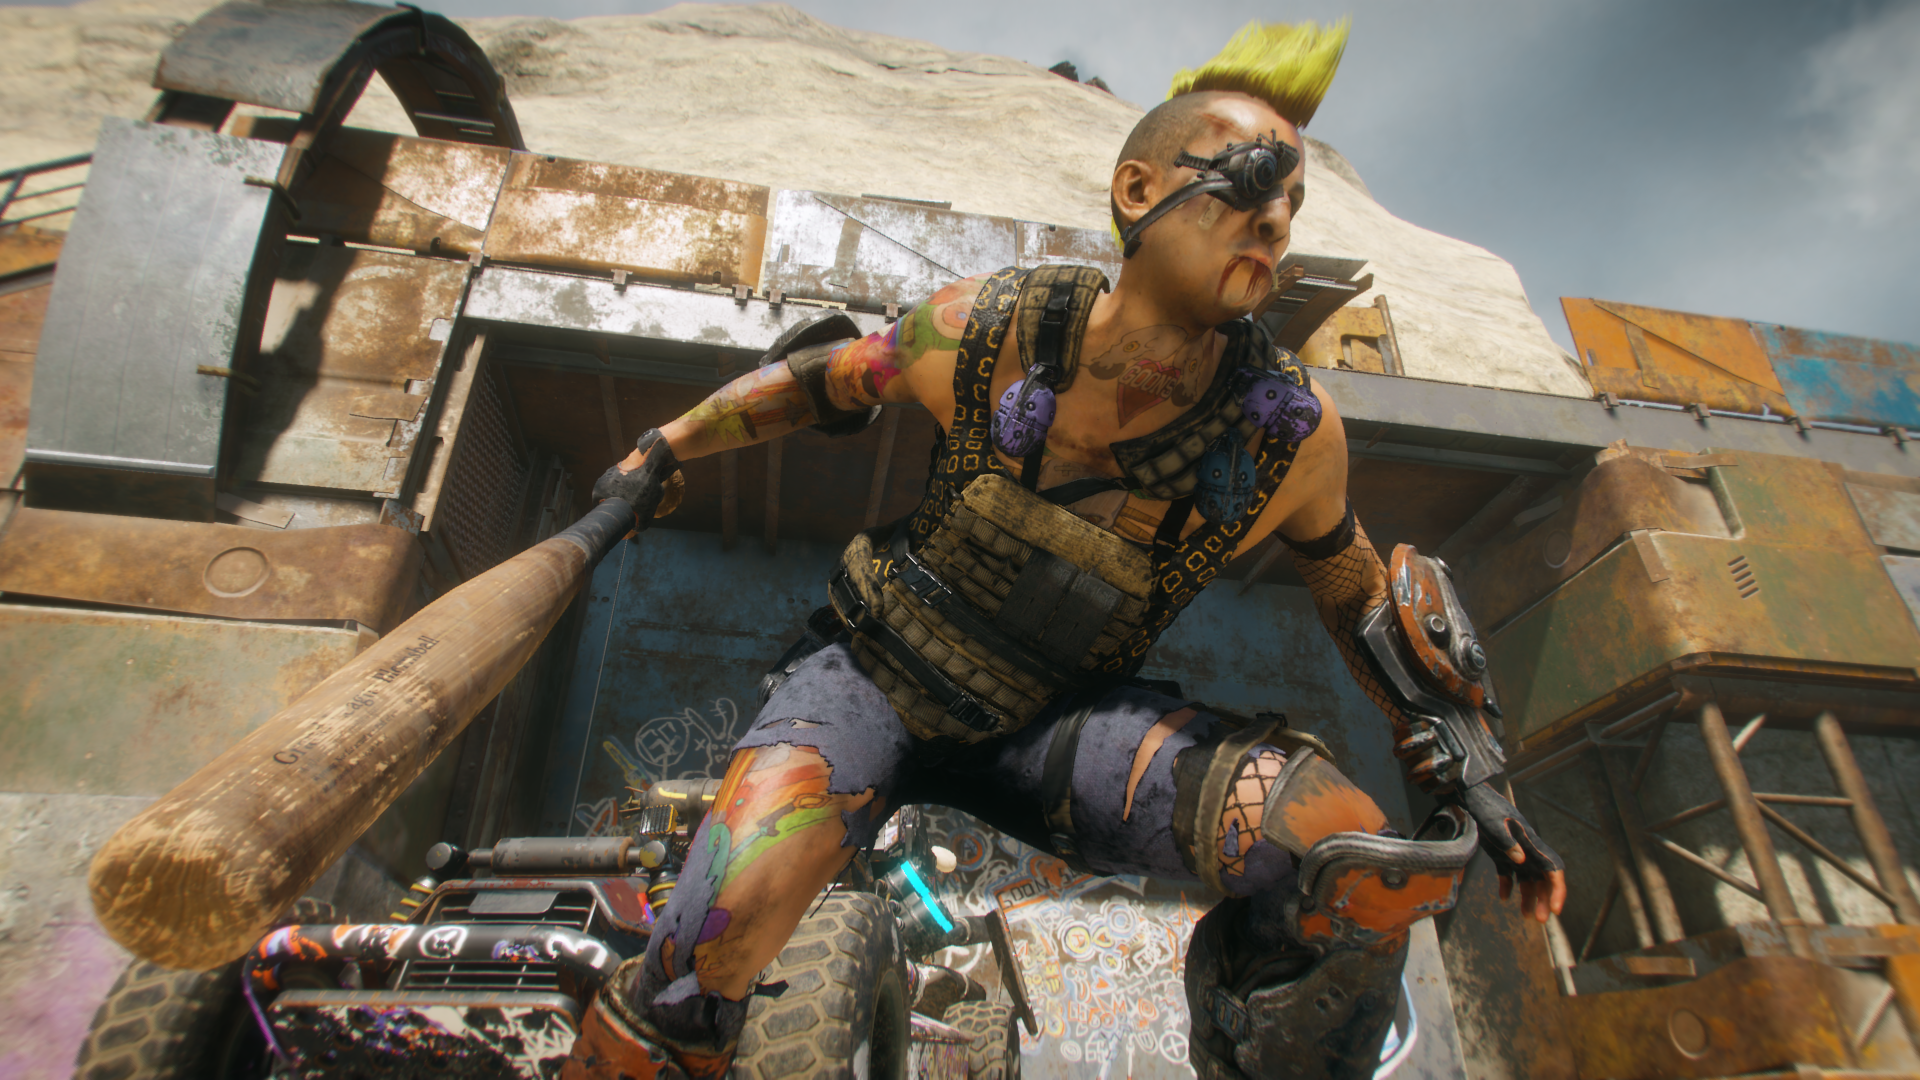 Rage 2 graphics performance: How to get the best settings on PC